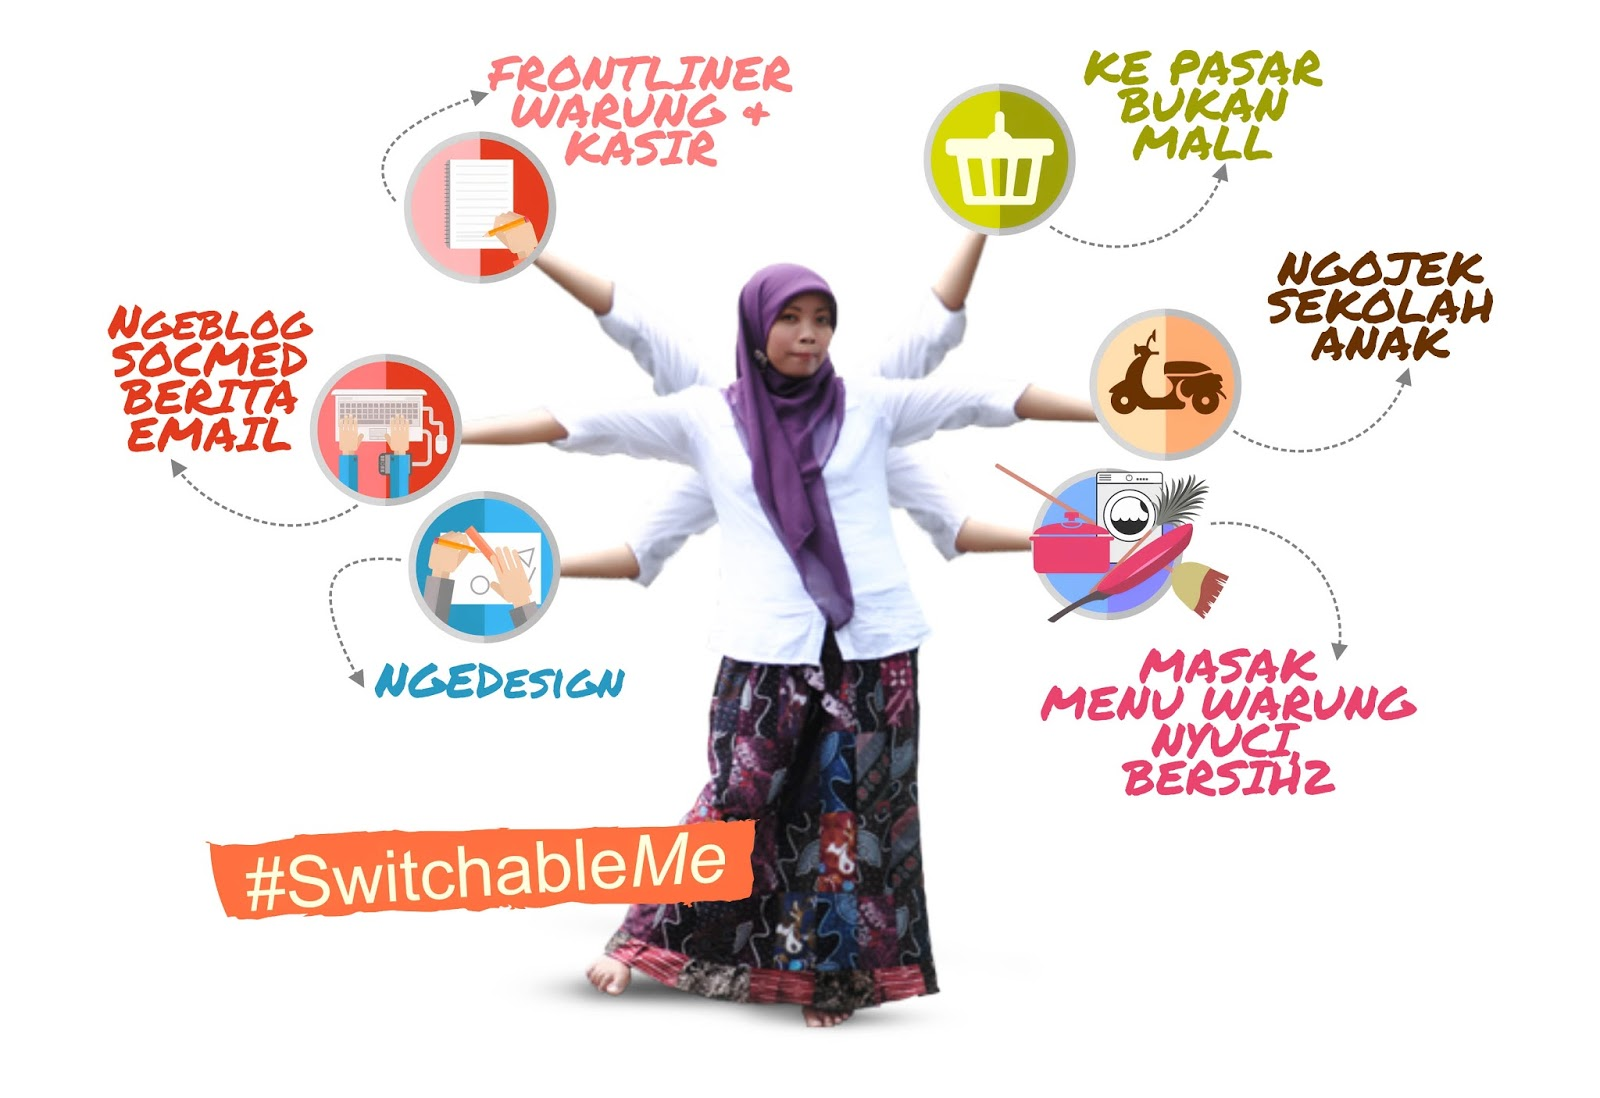 #switchable me